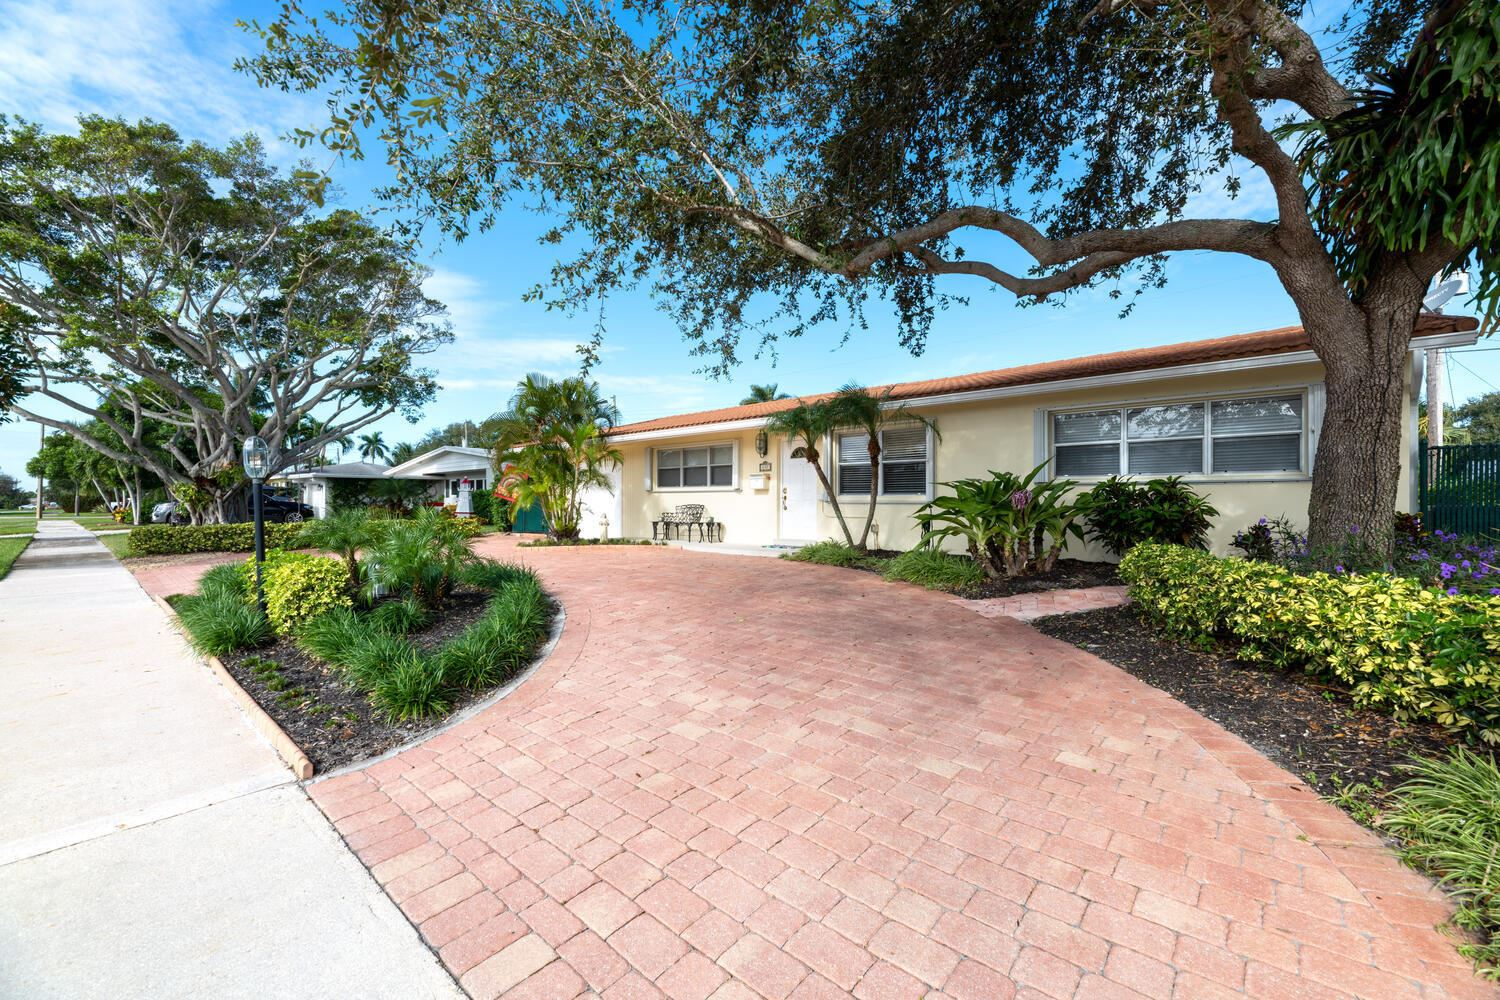 Photo of 437 Harbour Road, North Palm Beach, FL 33408 (MLS # RX-10674630)